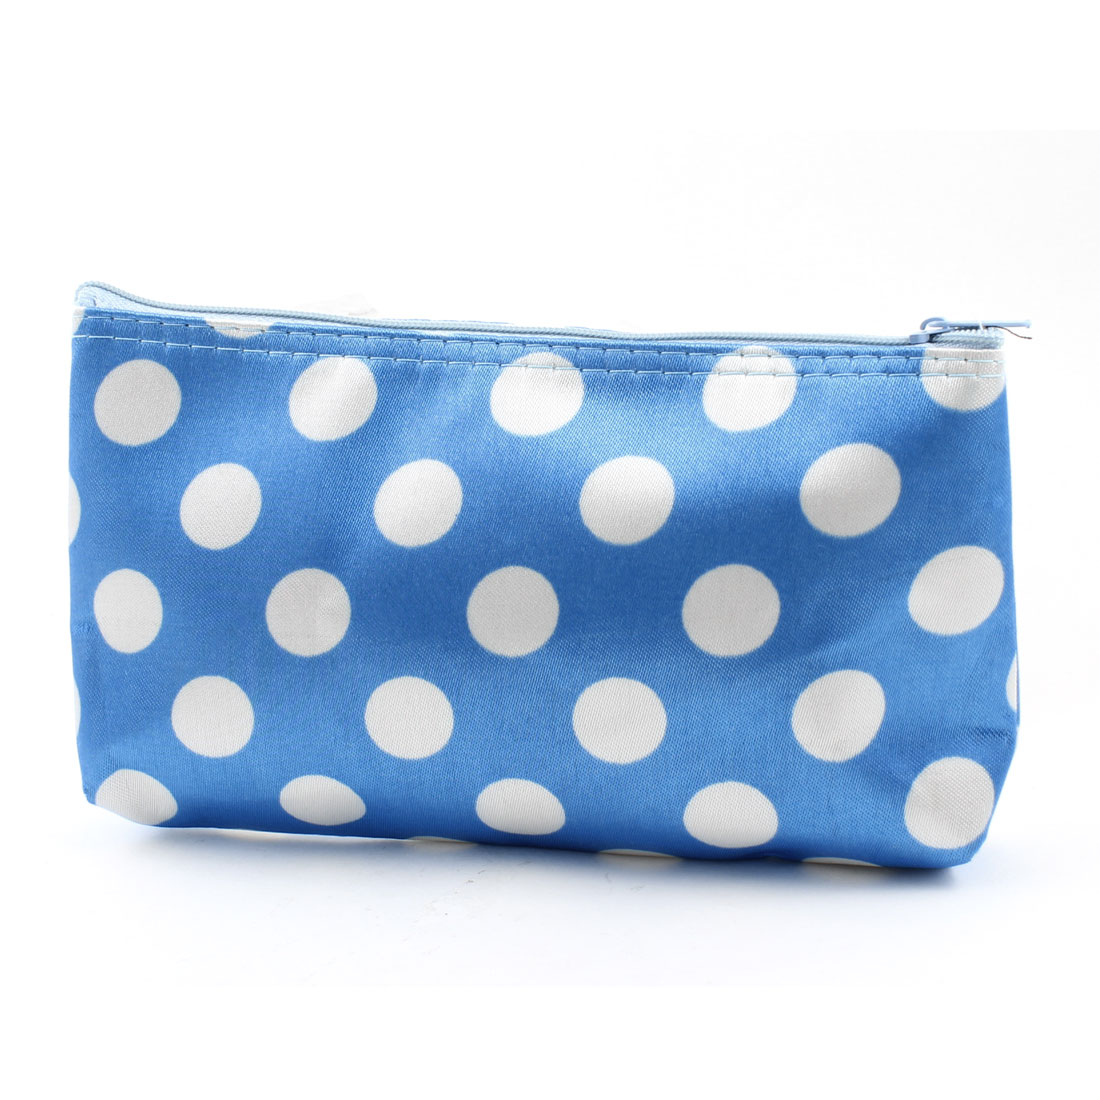 Lady White Dotted Zipper Closure Blue Cosmetics Holder Bag